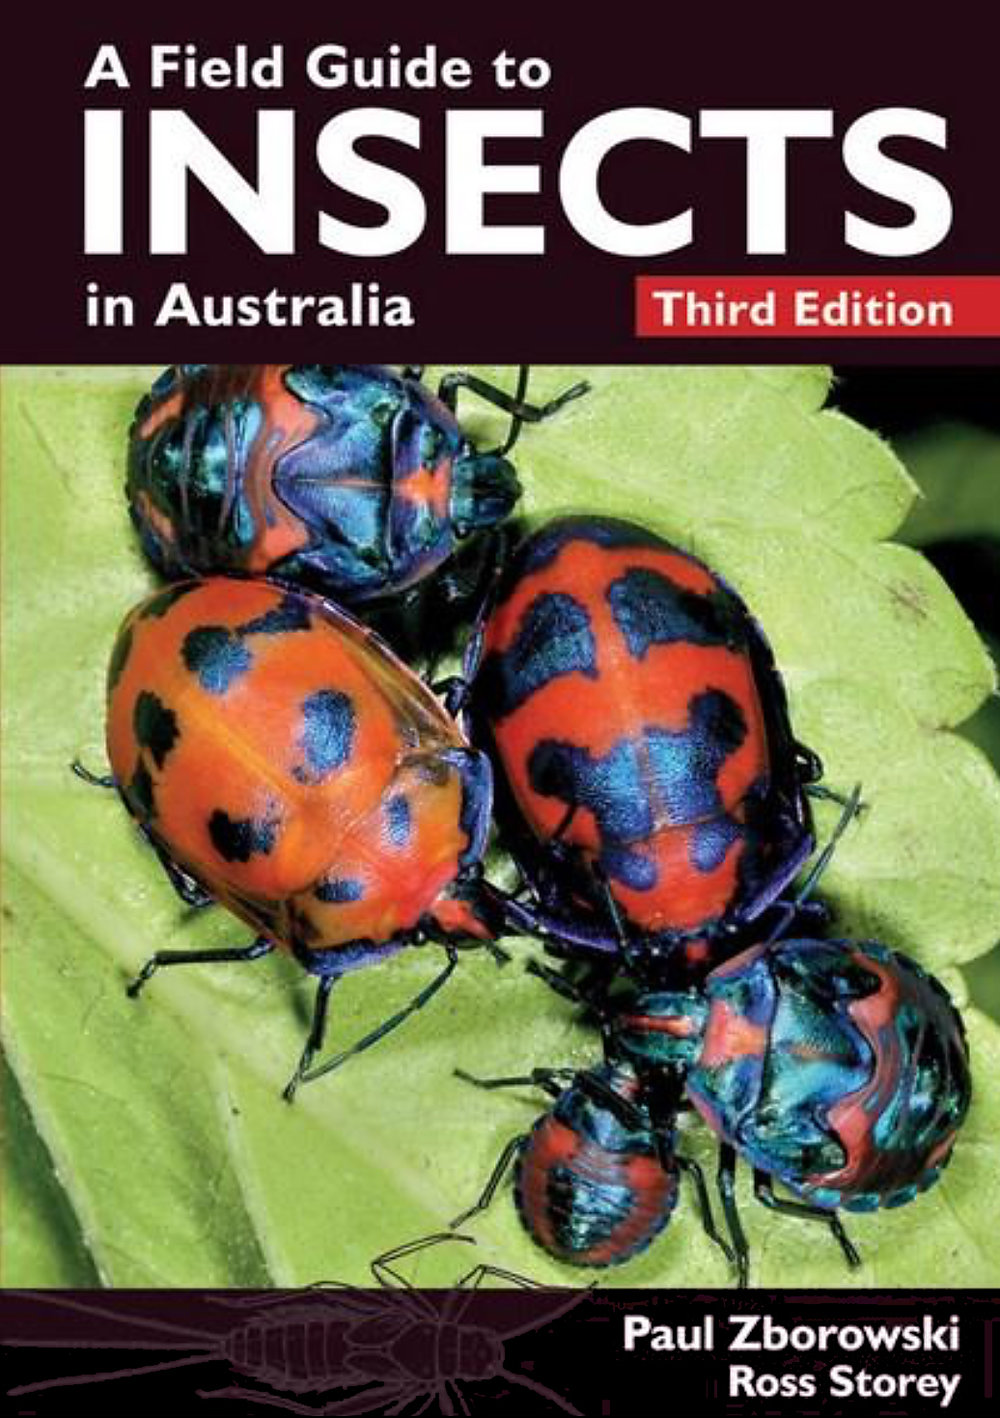 A-Field-Guide-to-Insects-in-Australia.jpg